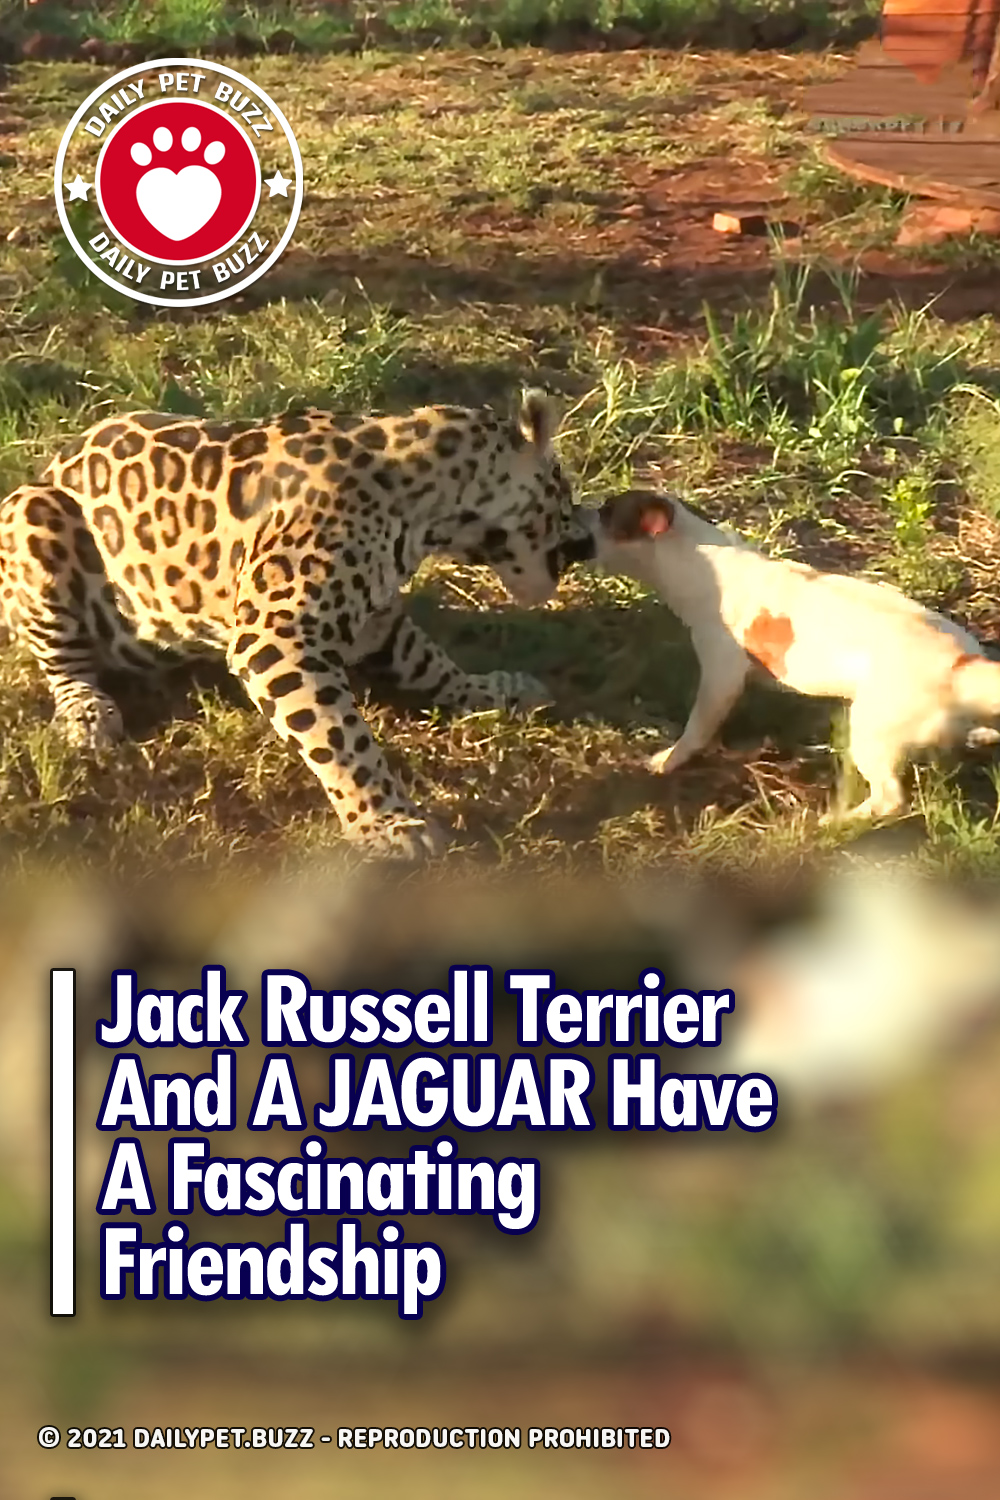 Jack Russell Terrier And A JAGUAR Have A Fascinating Friendship